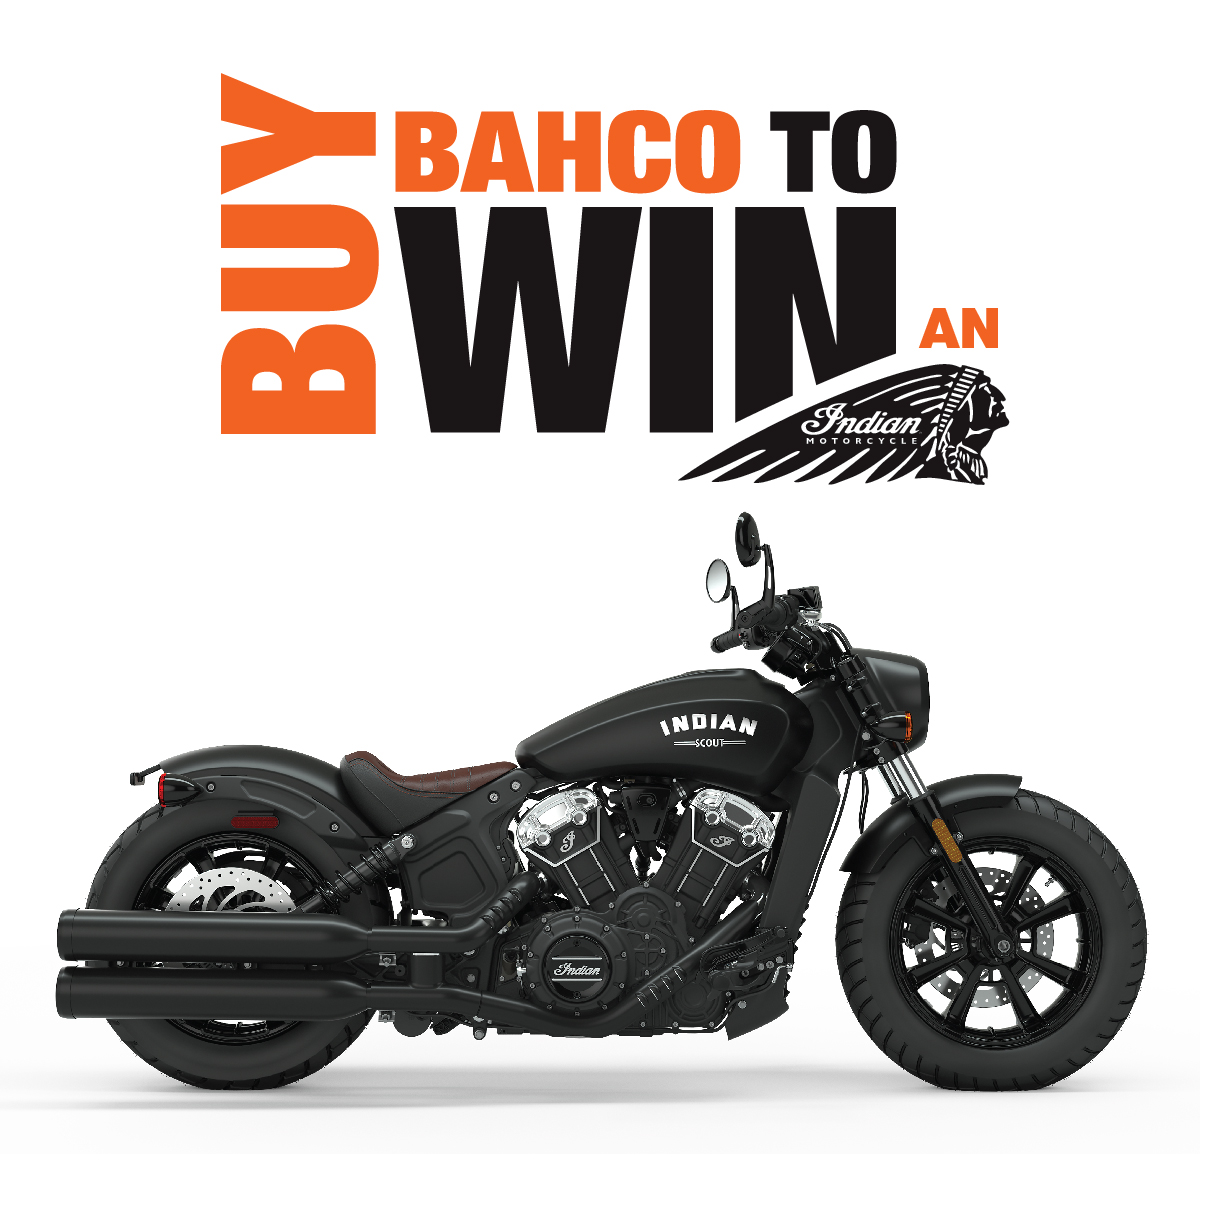 buy bahco to win